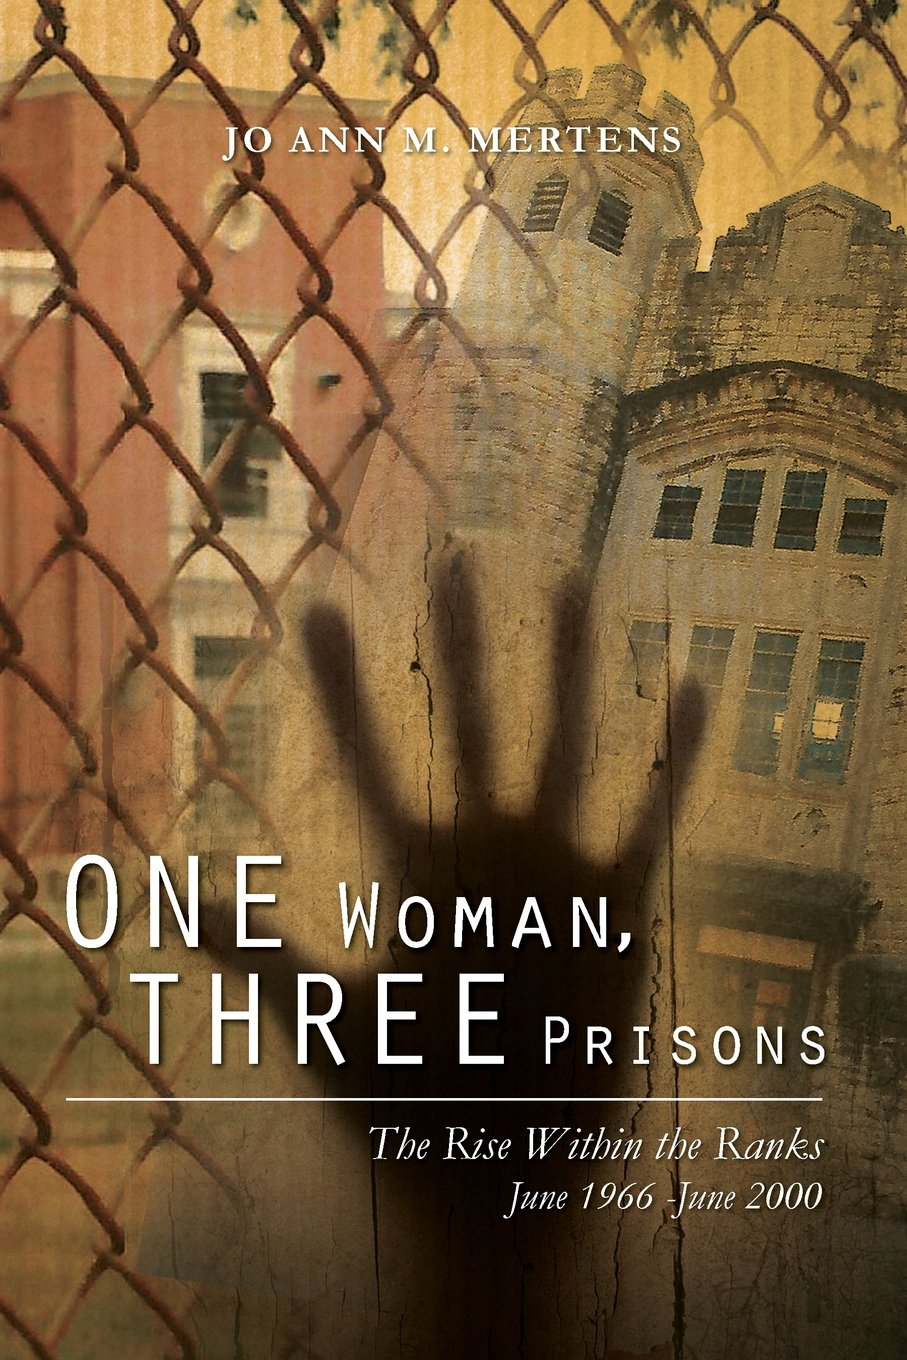 One Woman, Three Prisons: The Rise Within the Ranks June 1966 -June 2000 PDF